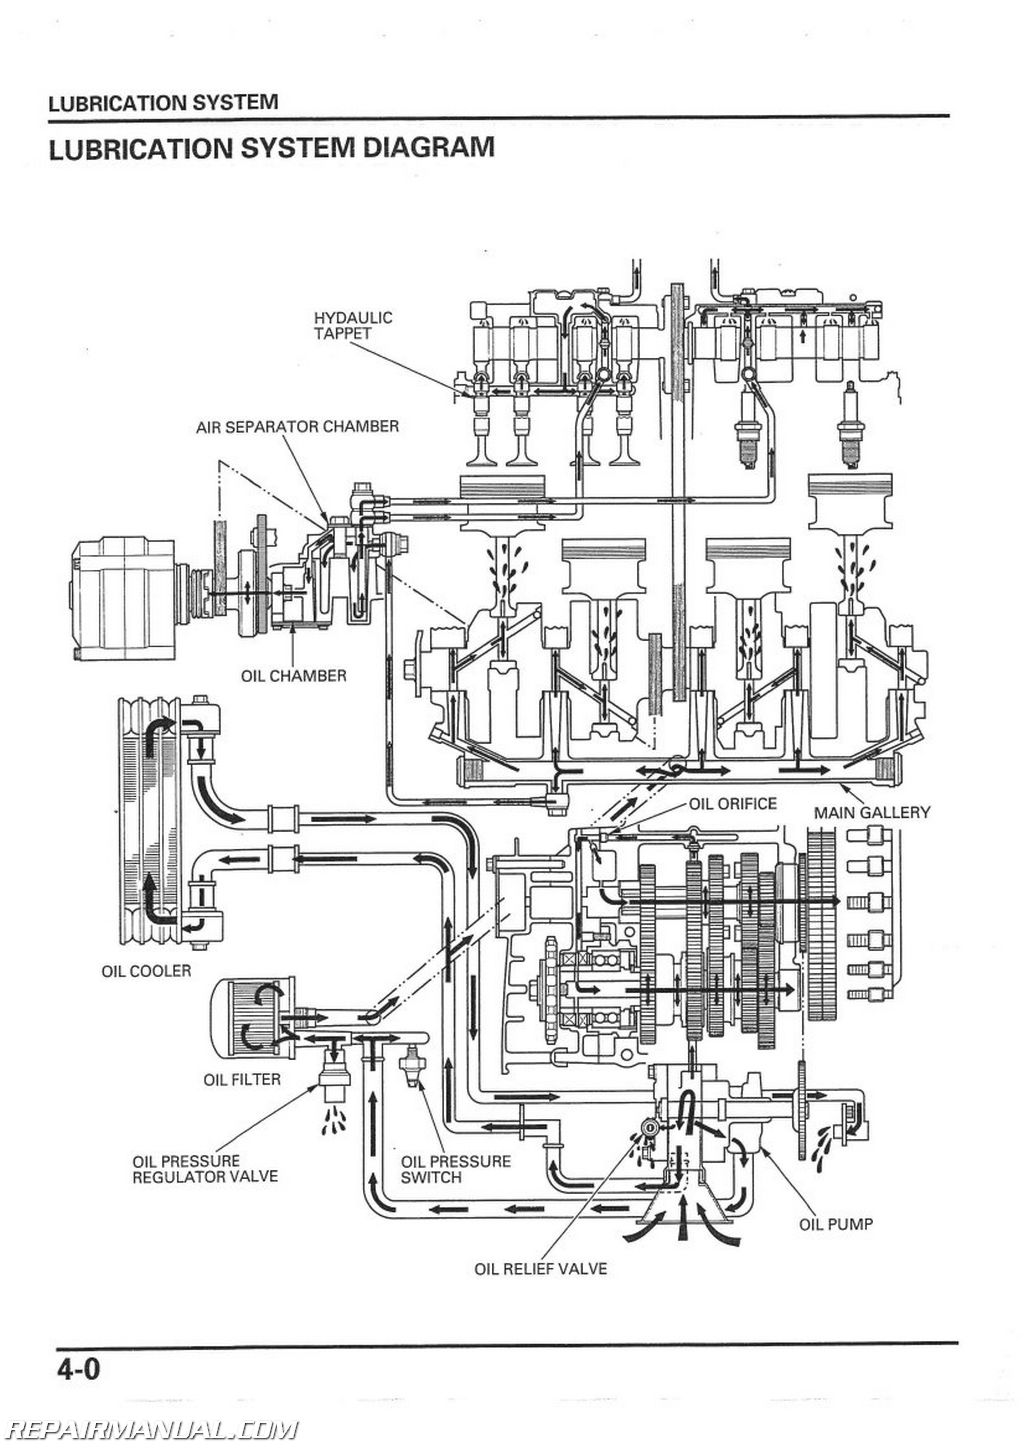 Old fashioned 1980 honda cb750 wiring diagram inspiration enchanting 1982 honda cb750 wiring diagram contemporary best image publicscrutiny Gallery